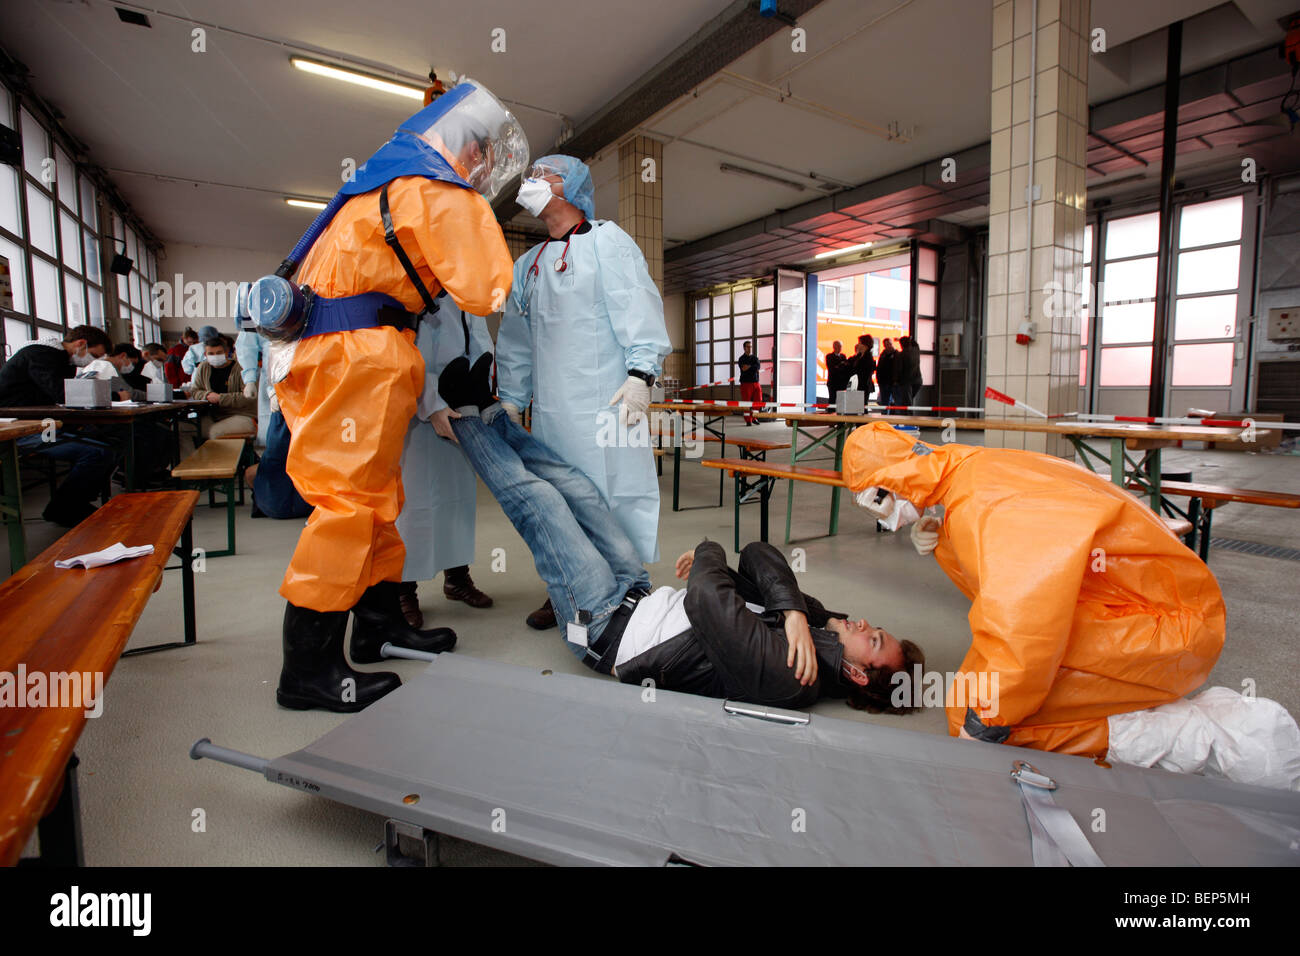 Exercise of a fire brigade, mass vaccination of people against a virus, pandemic exercise, Essen, Germany. - Stock Image